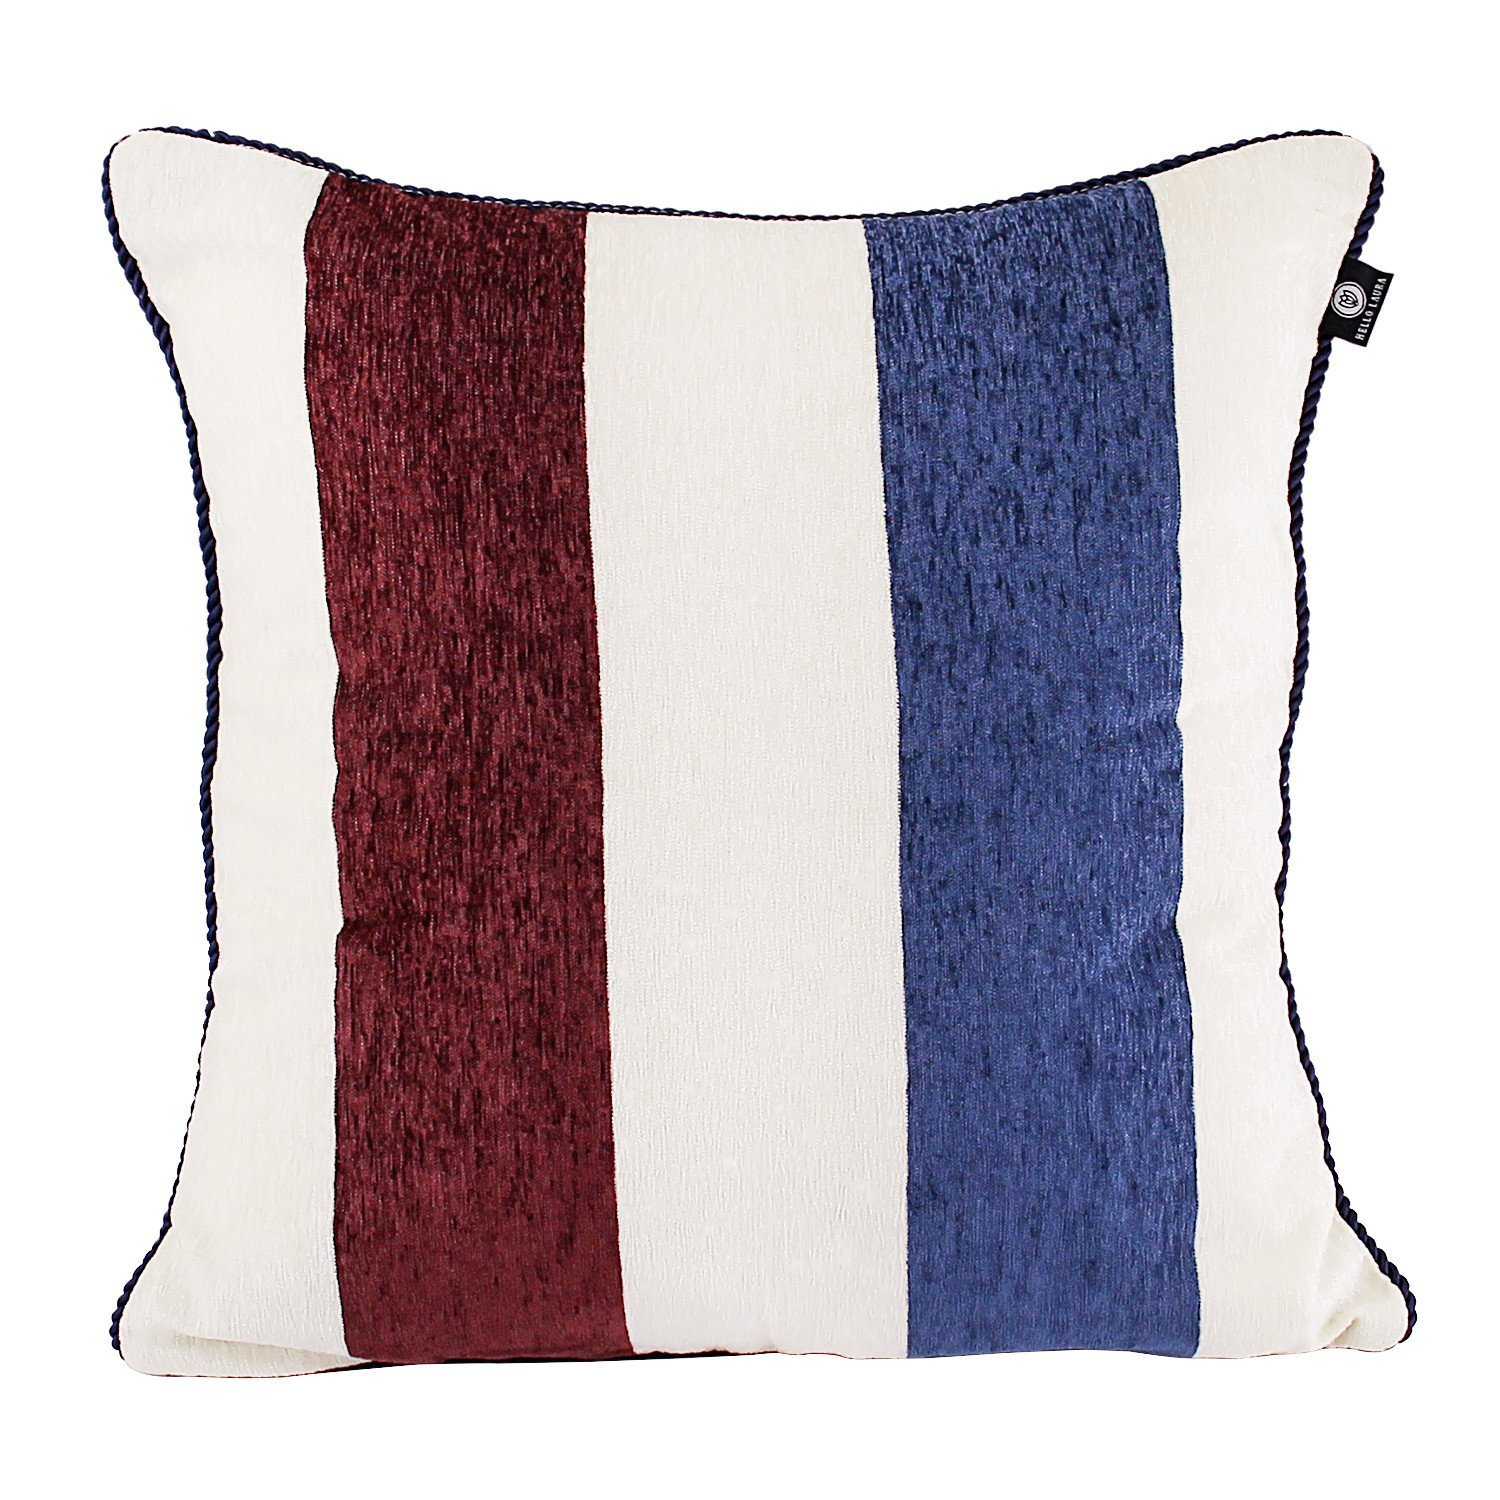 "DL furniture - True Chenille Fabric Throw Pillow Cushion Case Cover Shell W/ Hidden Zipper 18"" x 18"" 